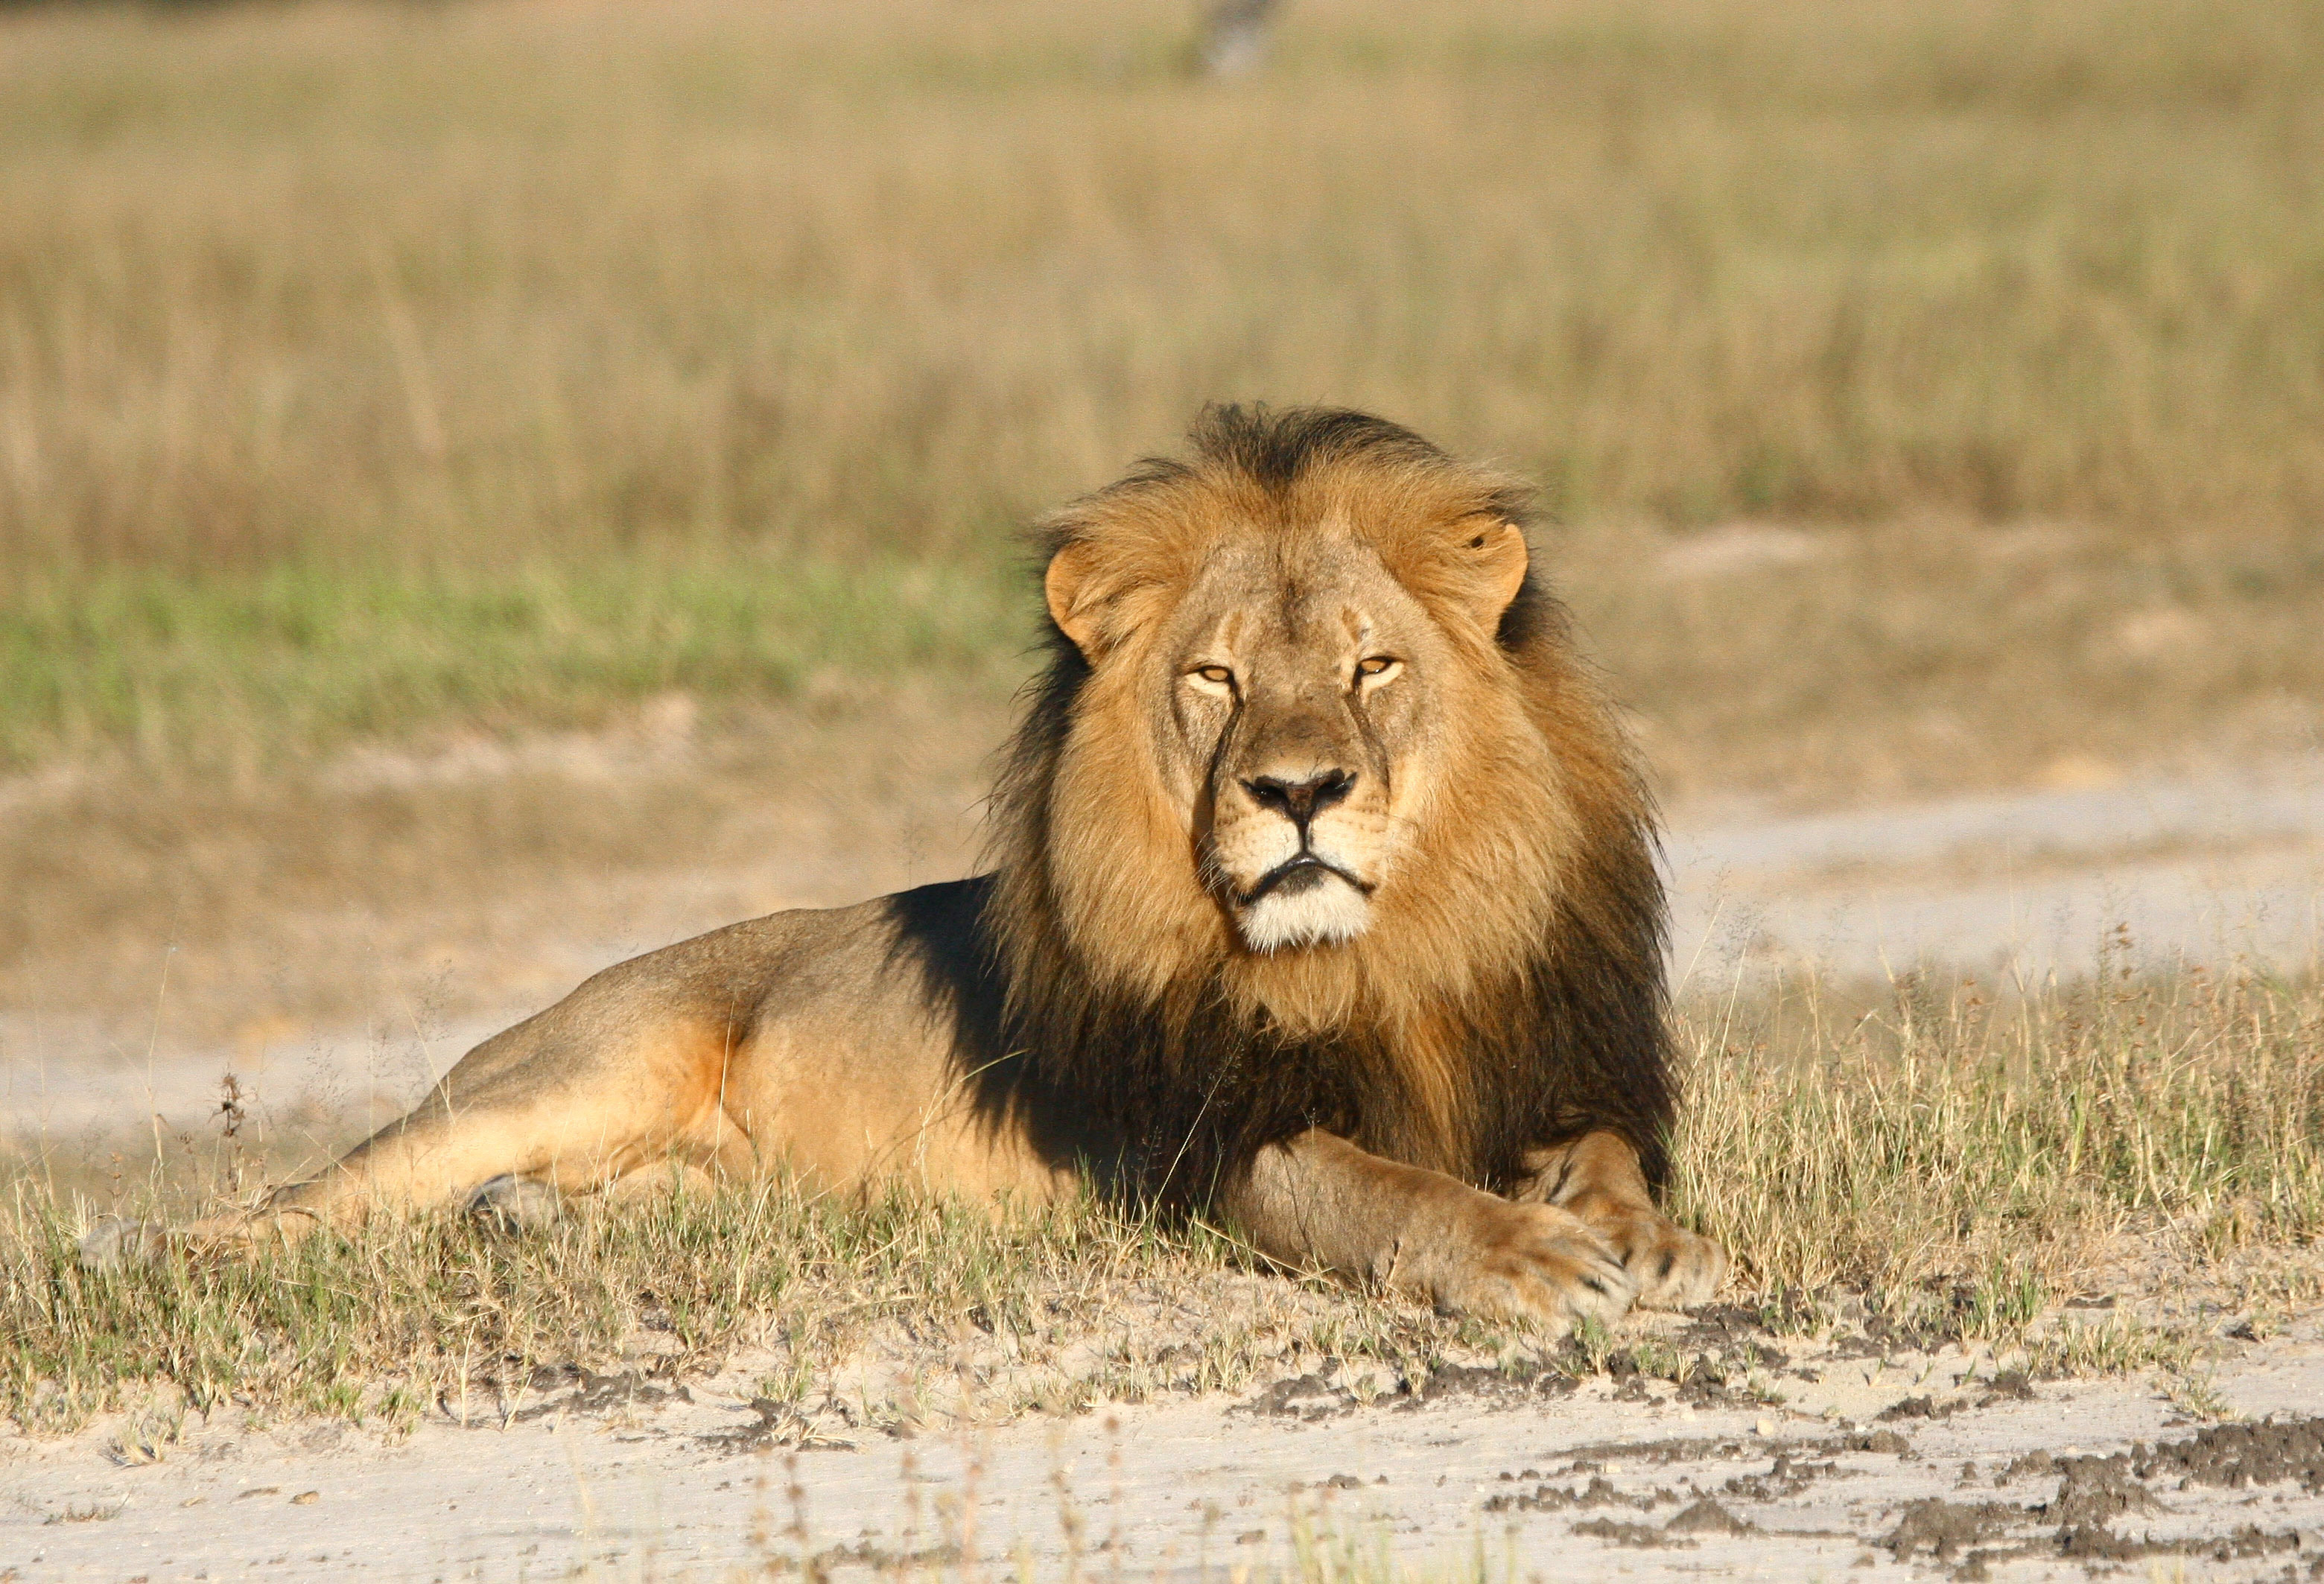 Cecil the lion rests in Hwange National Park in Hwange, Zimbabwe